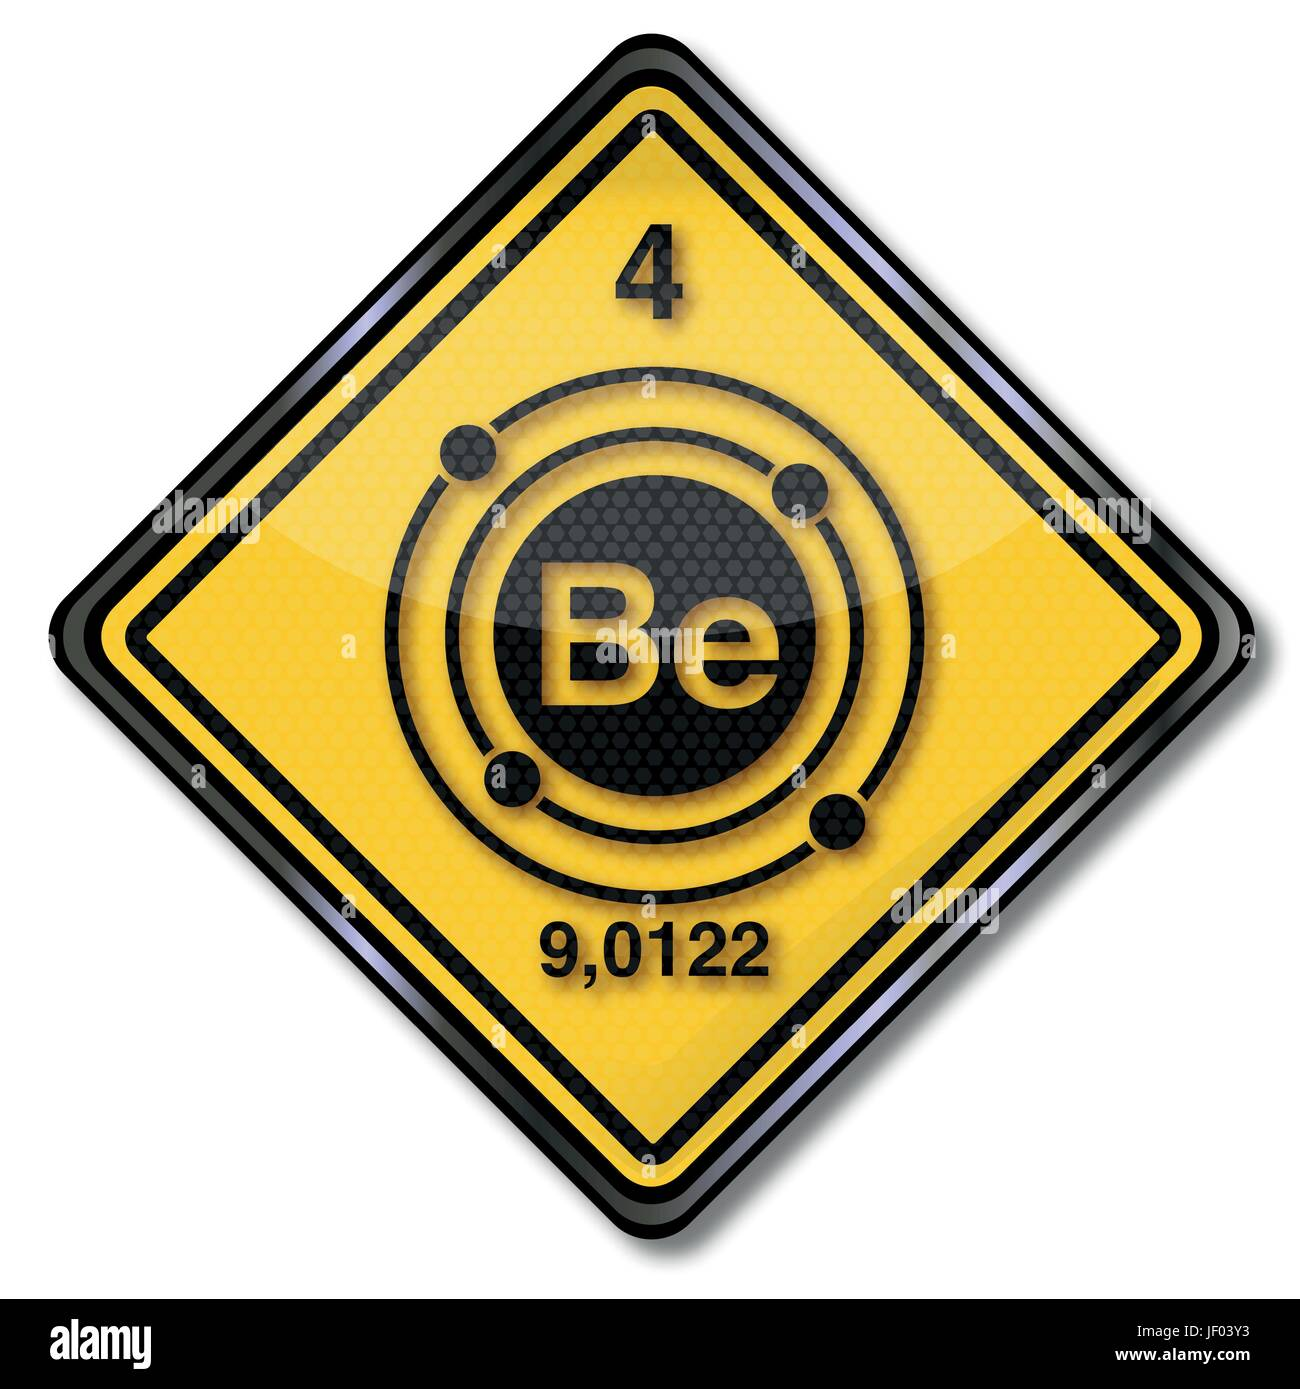 Element chemistry beryllium pictogram symbol pictograph element chemistry beryllium pictogram symbol pictograph trade symbol buycottarizona Image collections